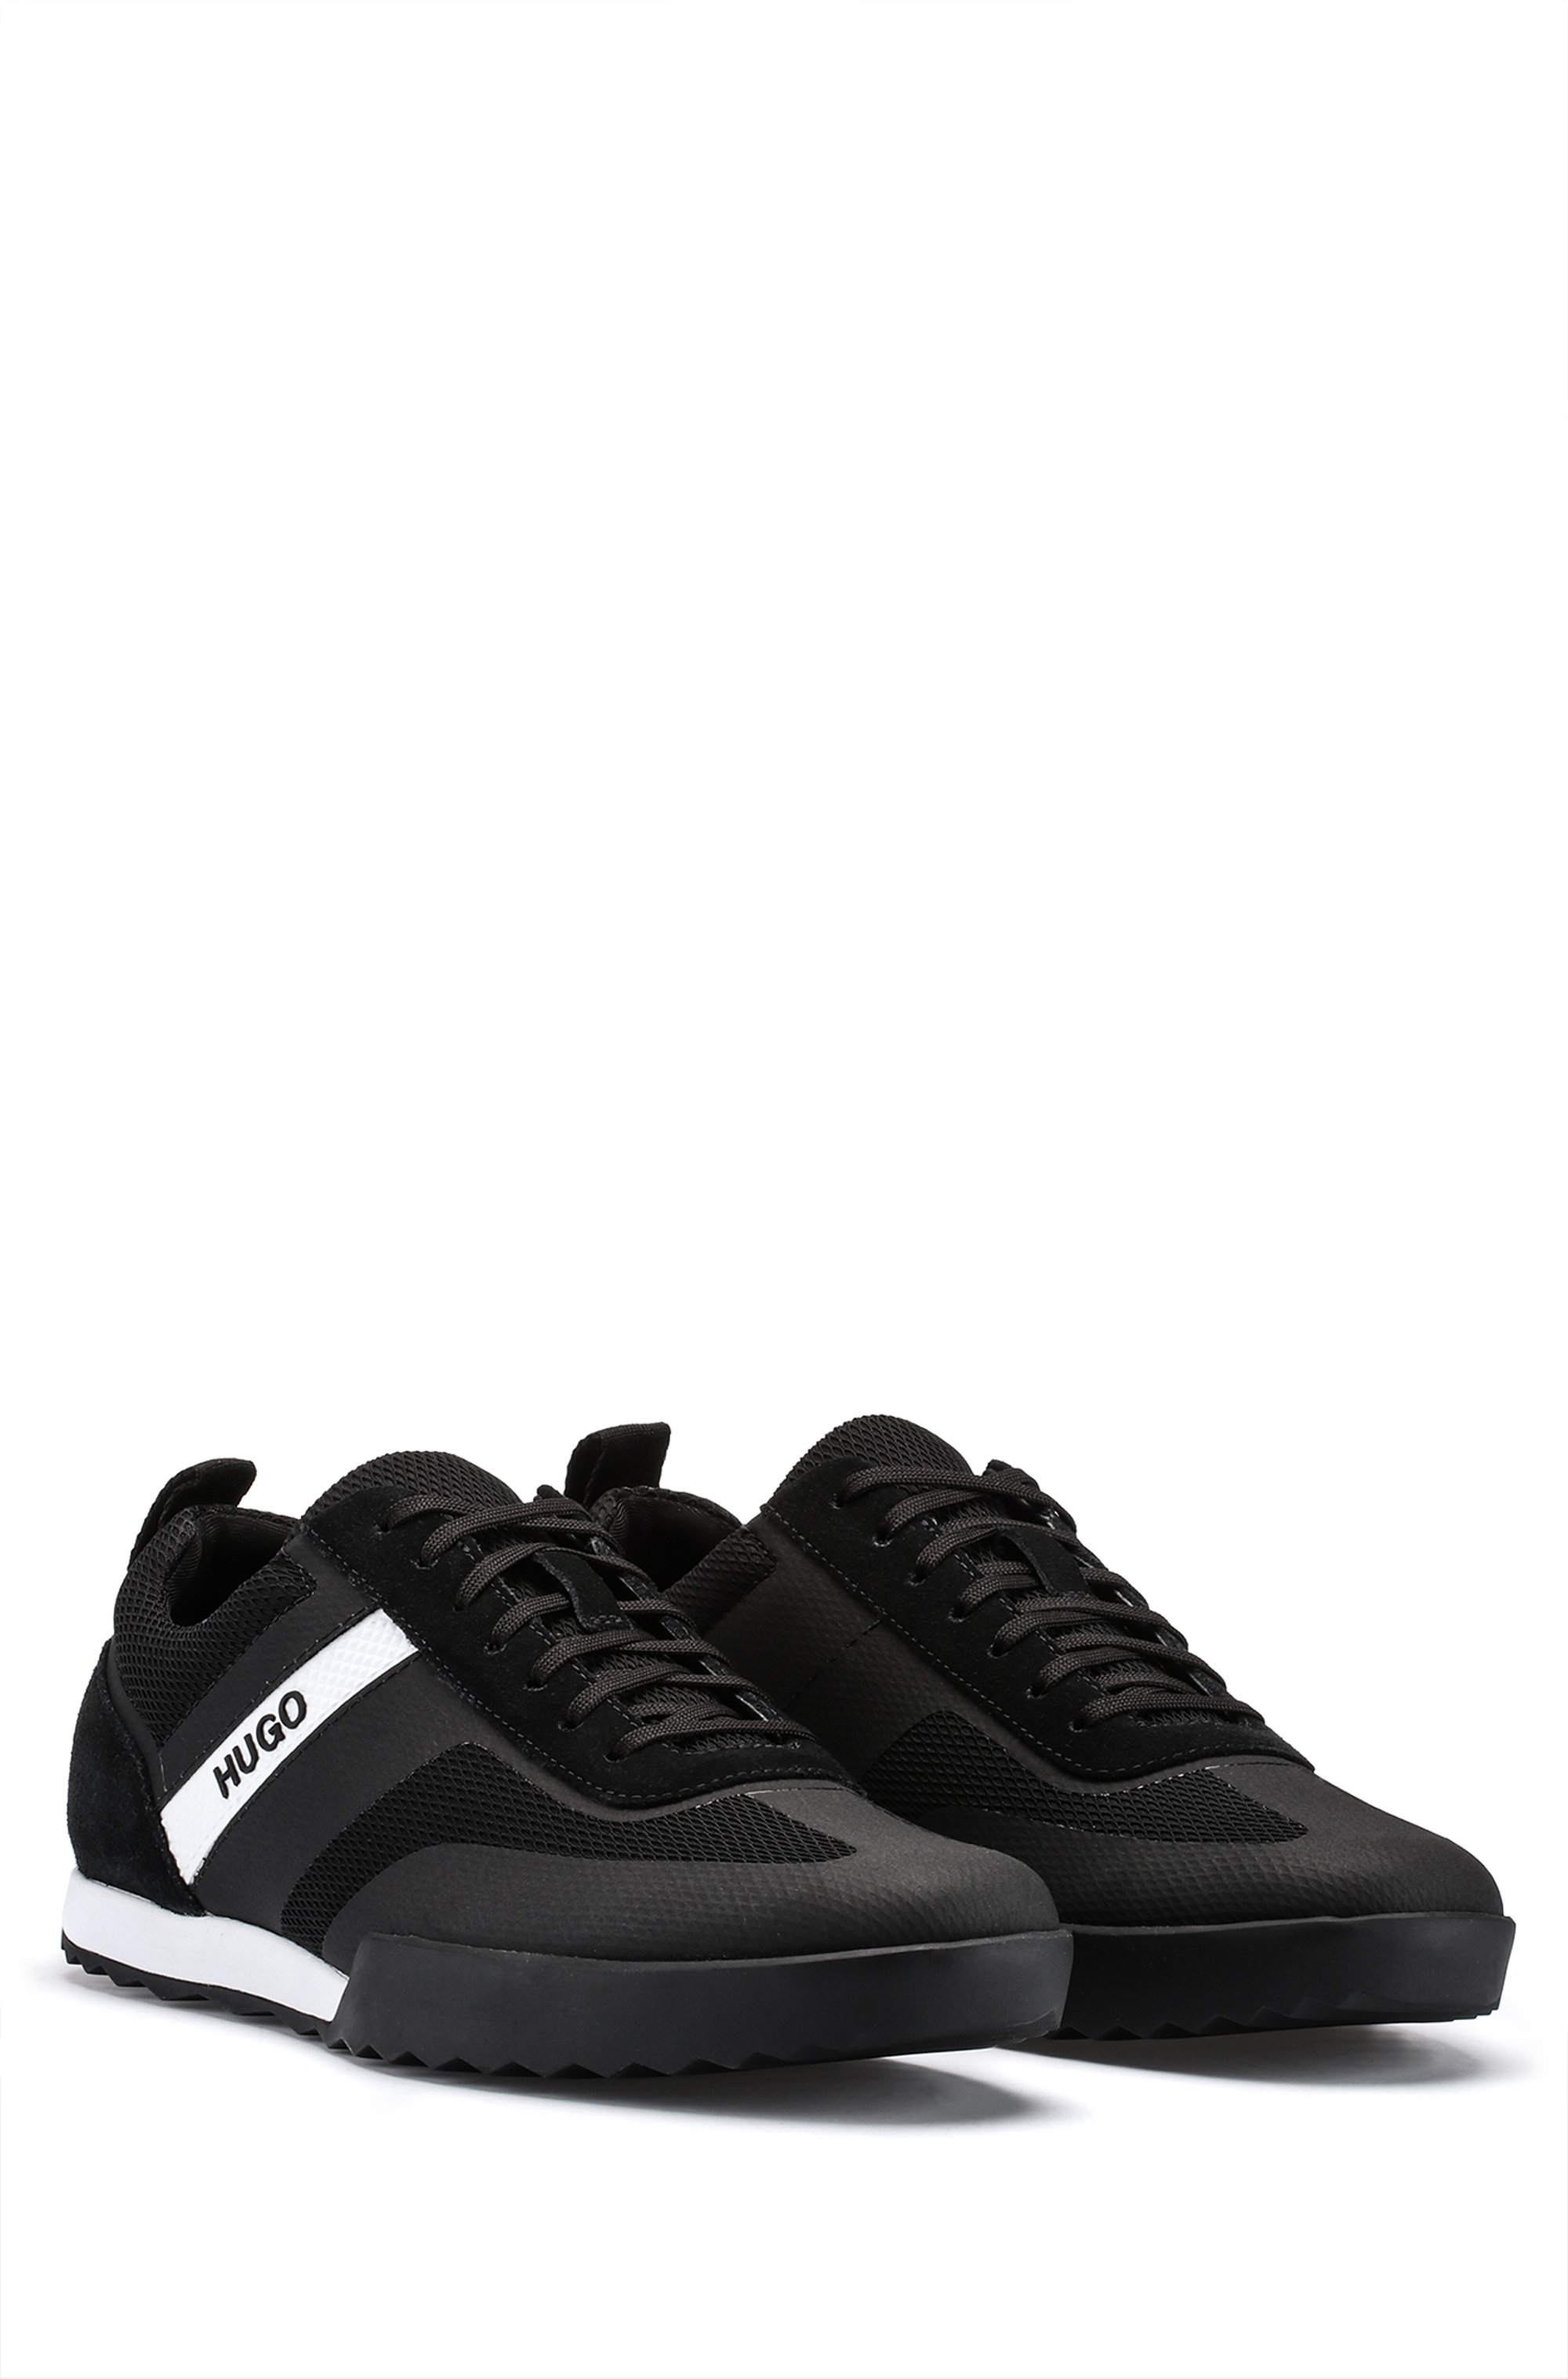 Low-top lace-up trainers in mesh and suede leather